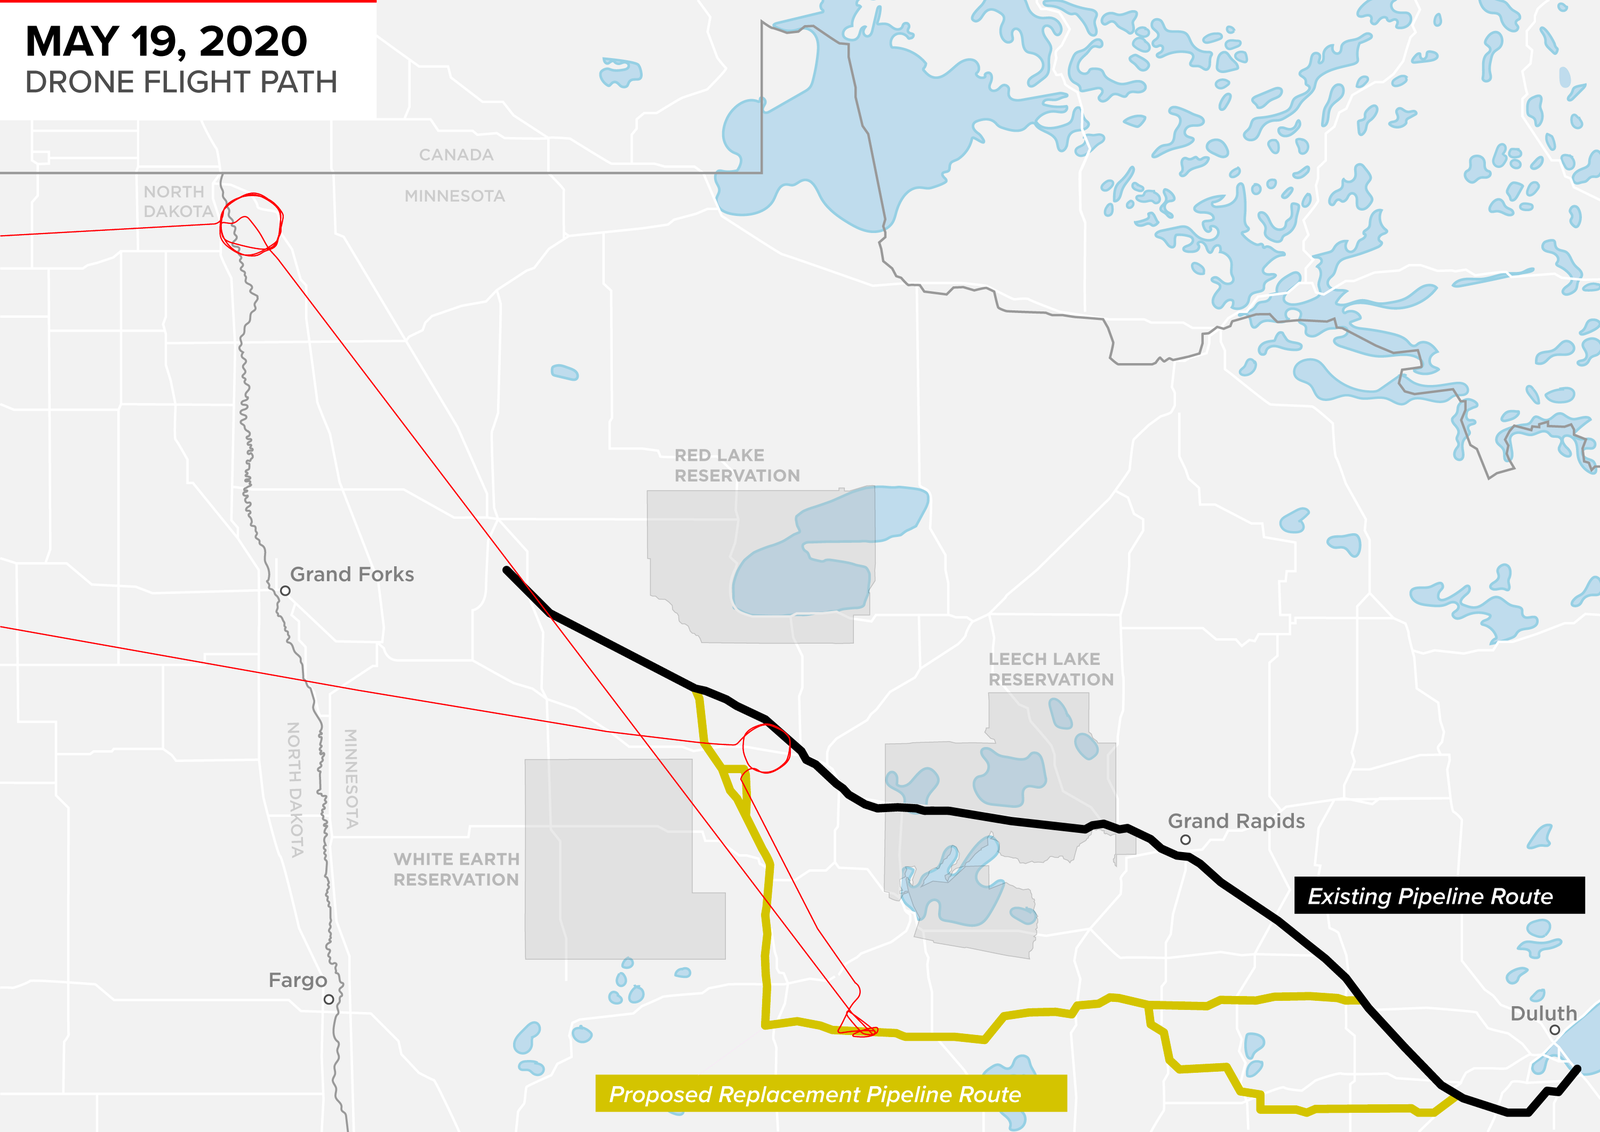 The red line shows the drone route over the region on May 19. The existing portion of Line 3 is in black, and the proposed replacement route is in yellow.